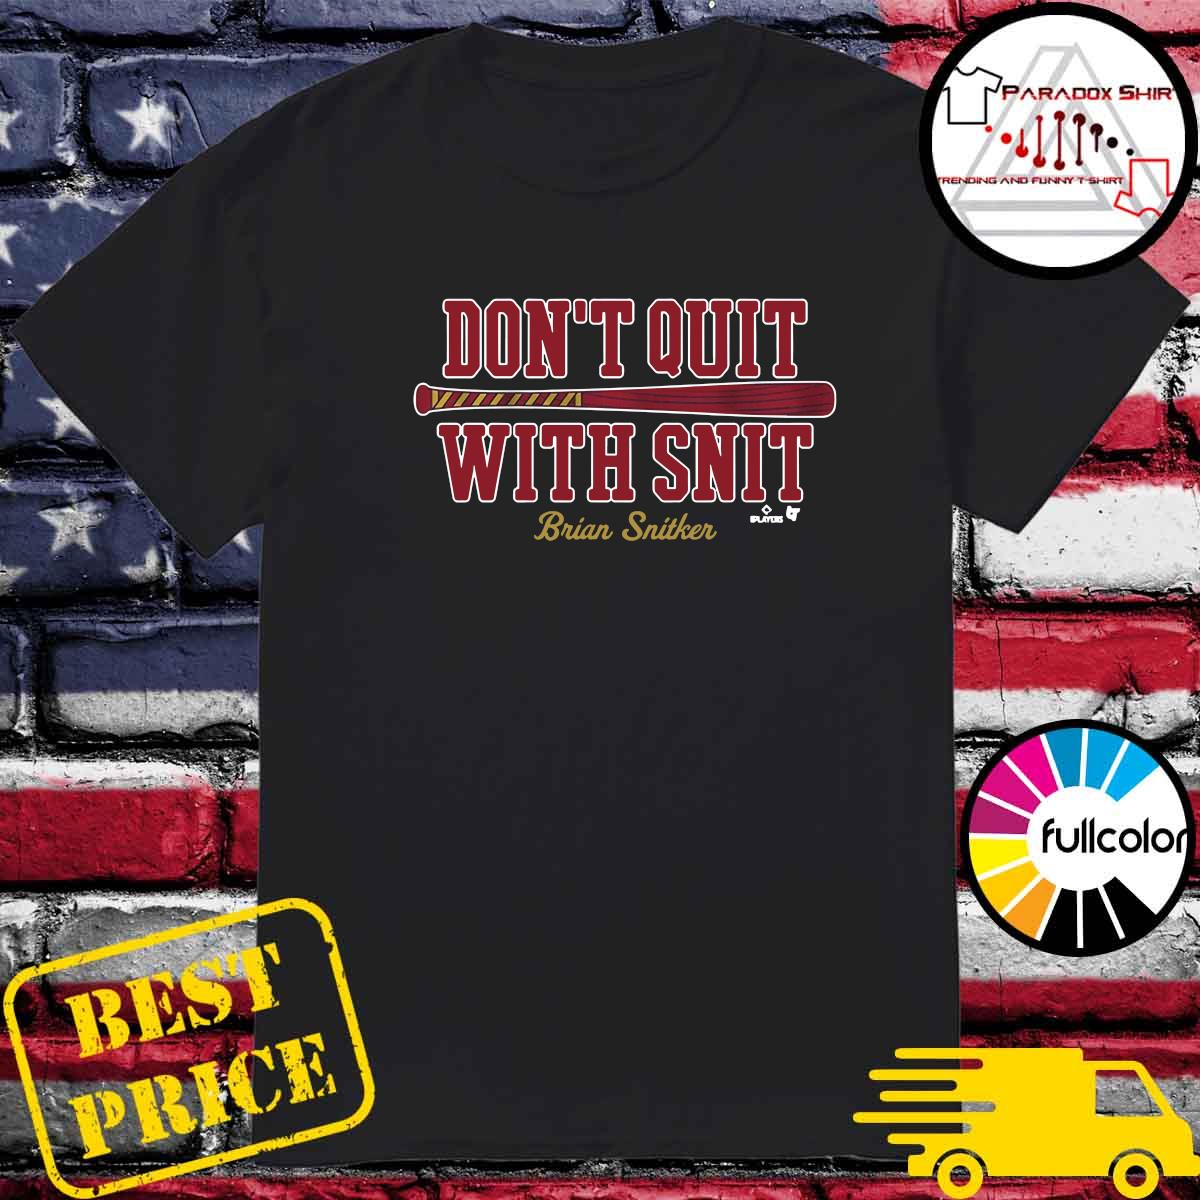 Brian Snitker Don't Quit With Snit Shirt